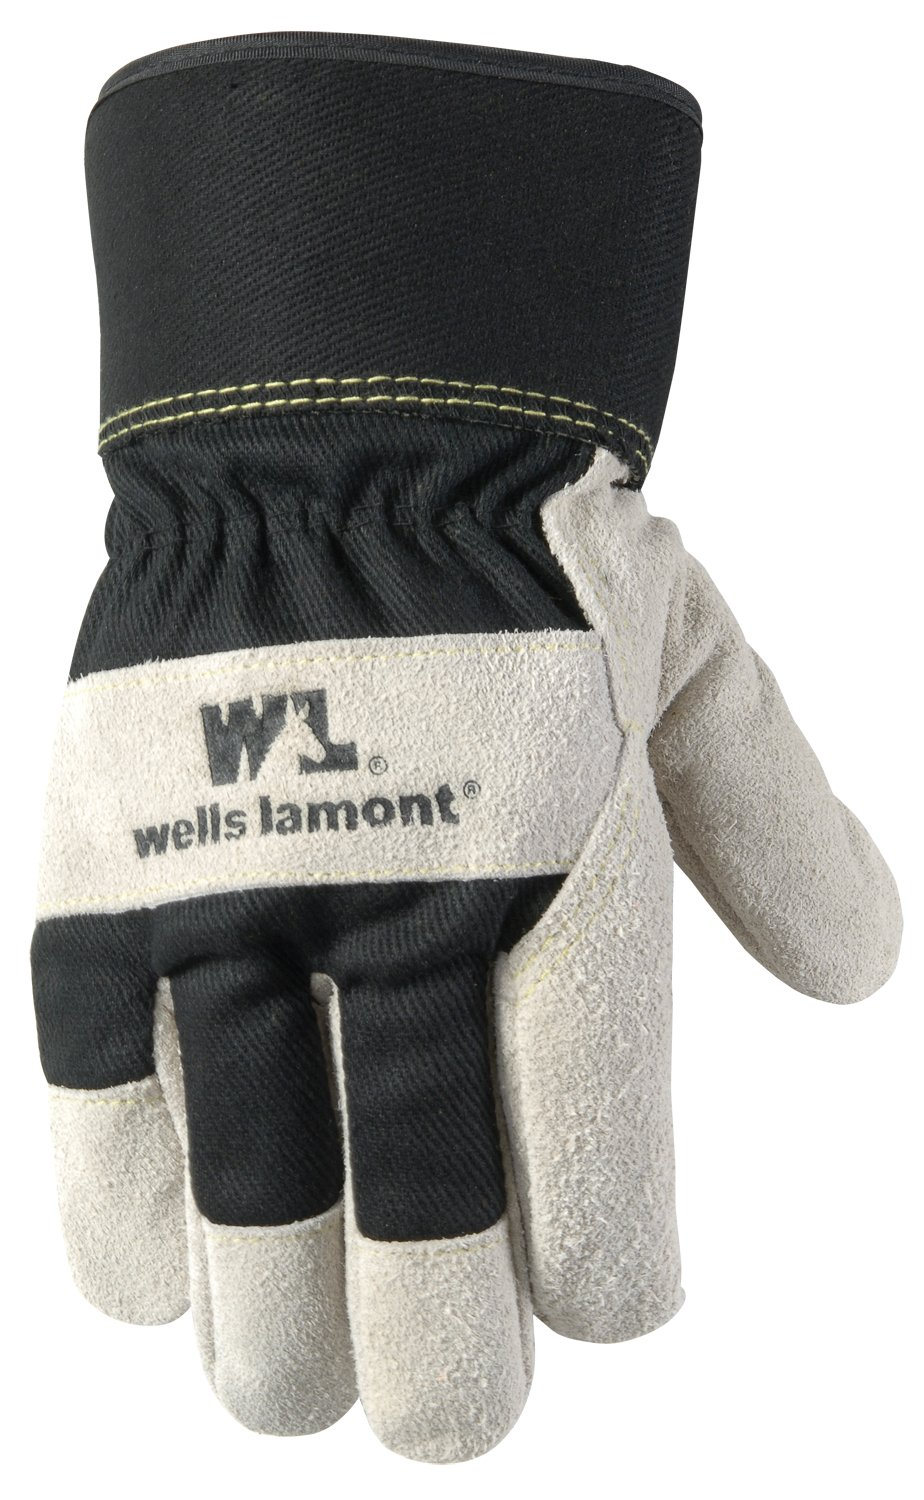 Insulated leather work gloves amazon - Wells Lamont Leather Work Gloves With Safety Cuff Insulated Palm Suede Large 5130l Cold Weather Gloves Amazon Com